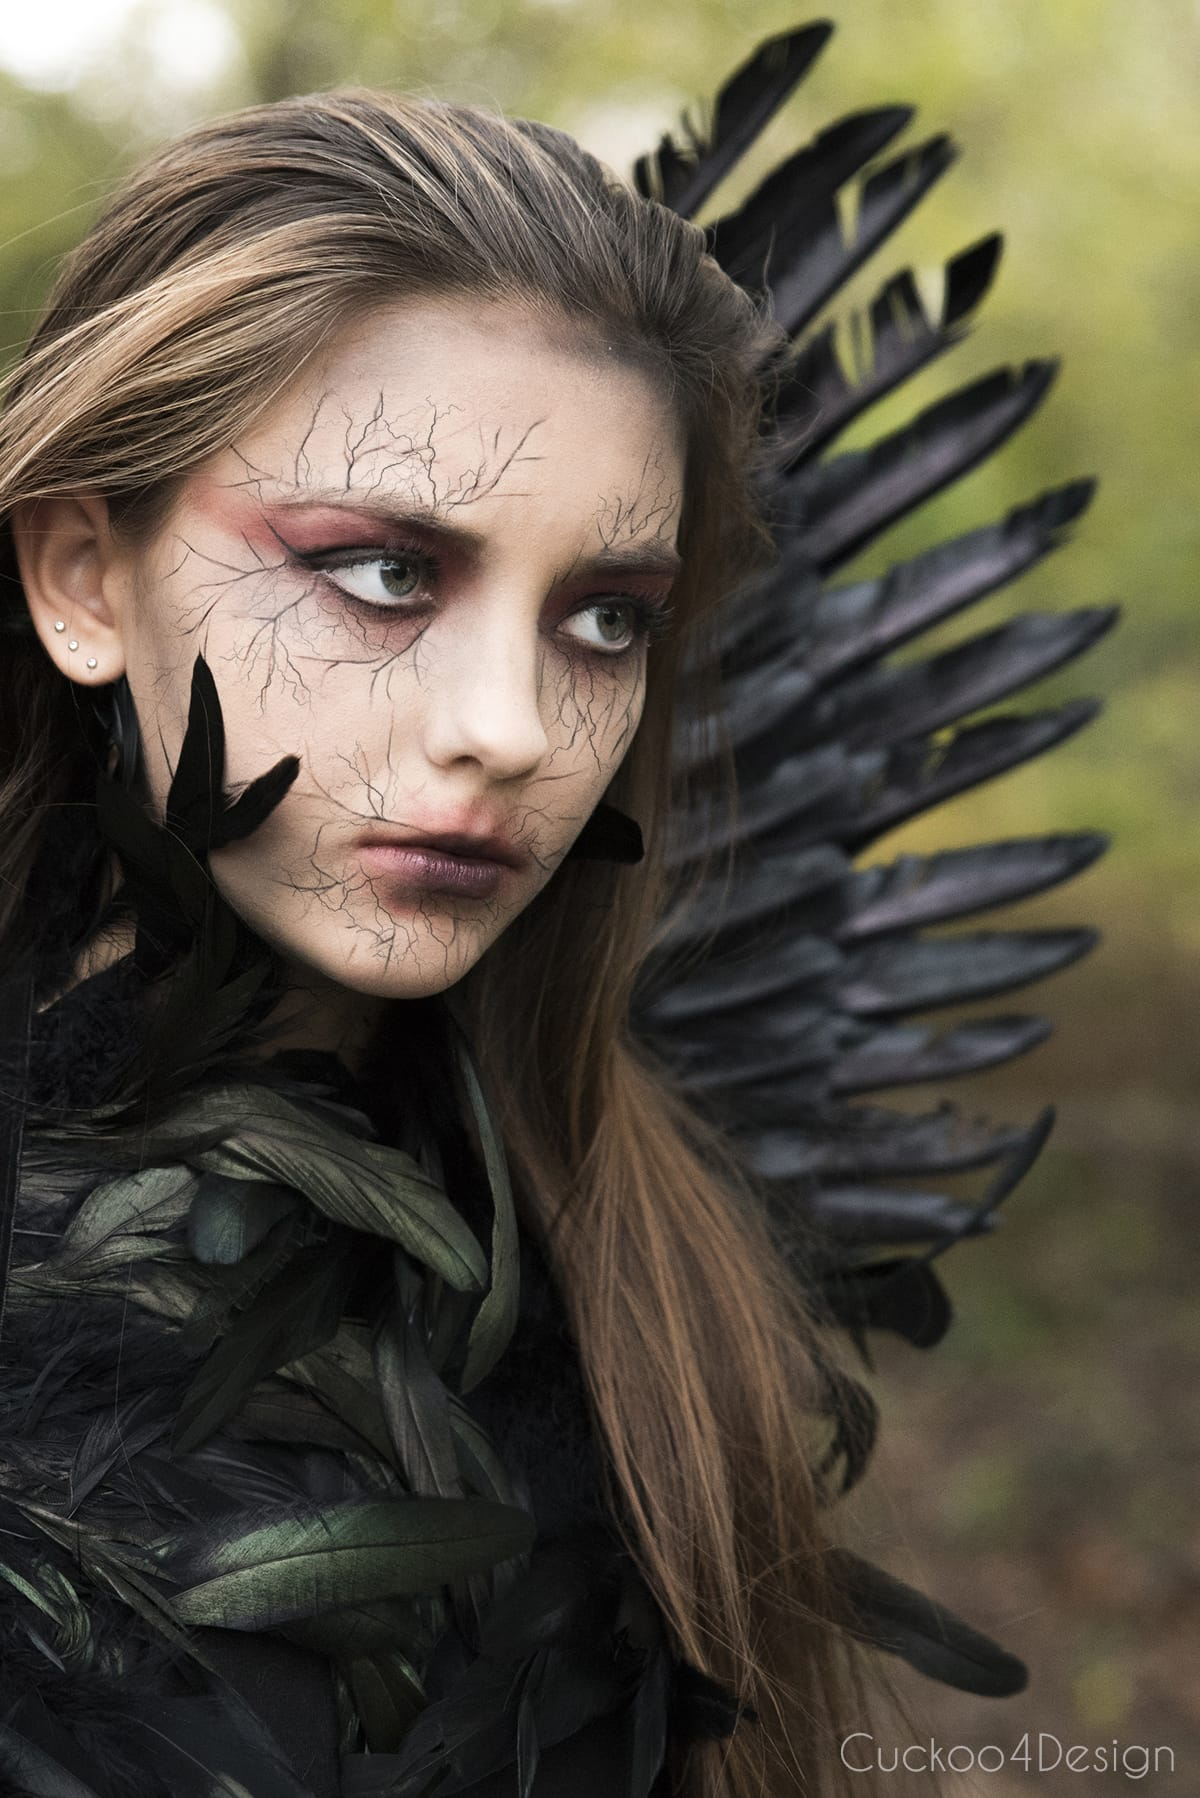 black or dark angel costume with wings